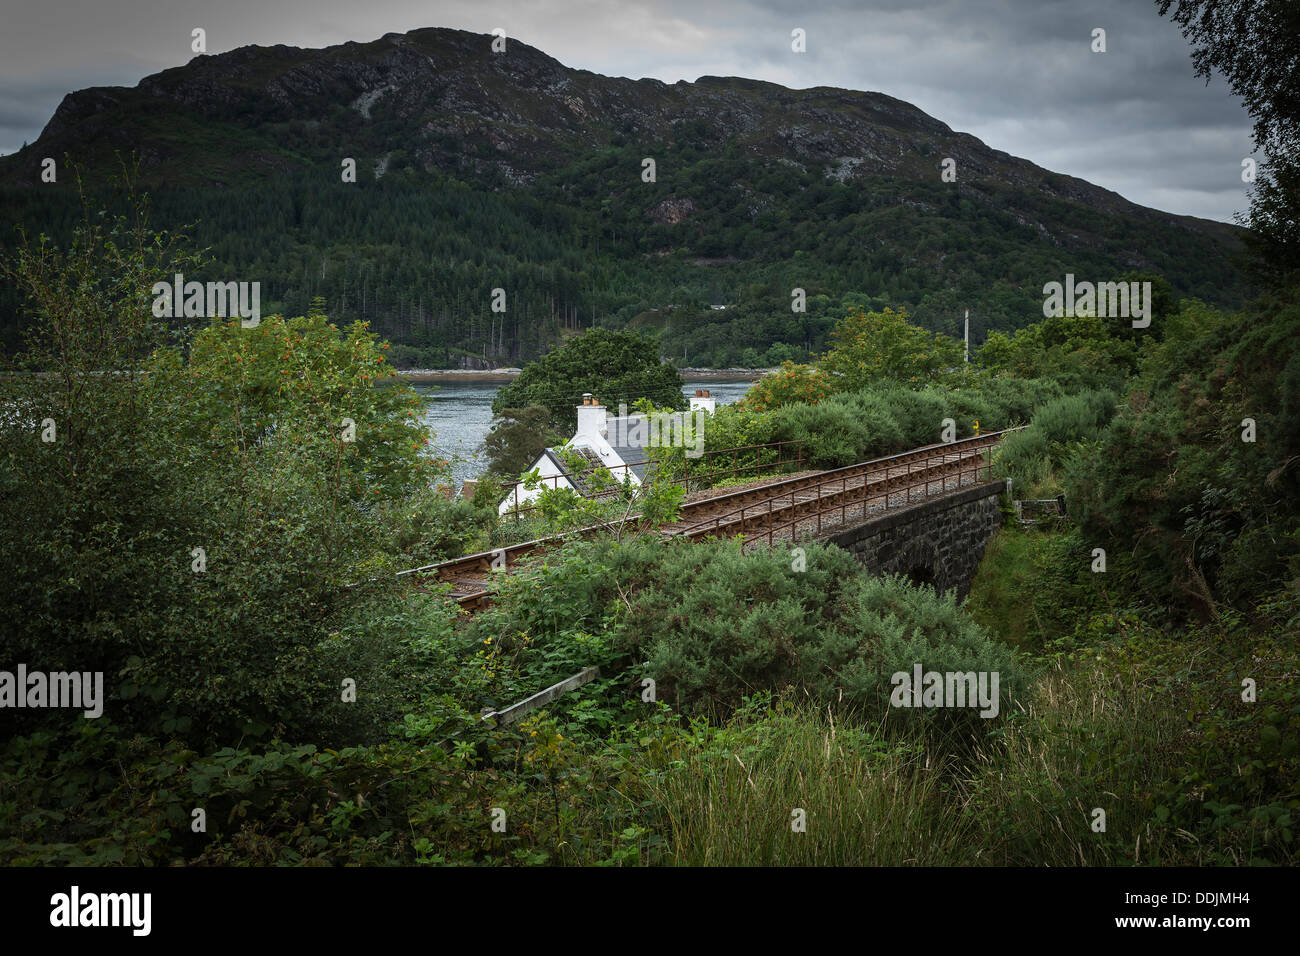 Kyle to Inverness railway line, near Achmore, Loch Carron, Wester Ross, Scotland - Stock Image